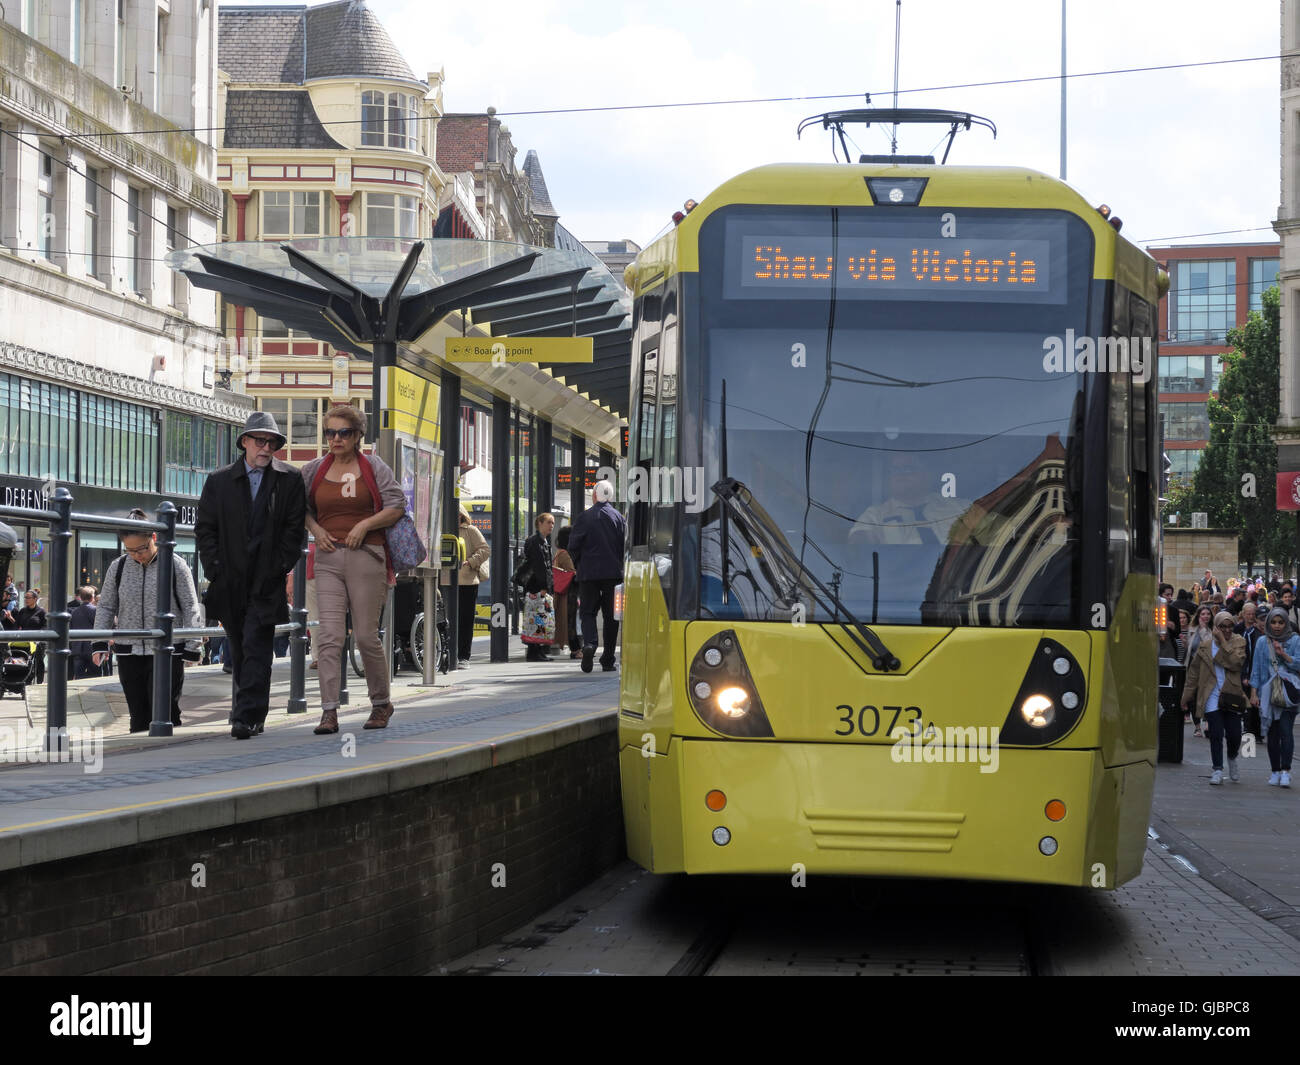 GoTonySmith,@HotpixUK,Tony,Smith,UK,GB,Great,Britain,United,Kingdom,English,British,England,problem,problem with,issue with,Images of,Stock Images,Tony Smith,United Kingdom,Great Britain,rail,Light Railway,Shaw,Victoria,in,City Centre,North West England,tram network,transport,system,light-rail scheme,Transport for Greater Manchester,Keolis Amey consortium,standard-gauge track,tramway,street-running rail system,trams